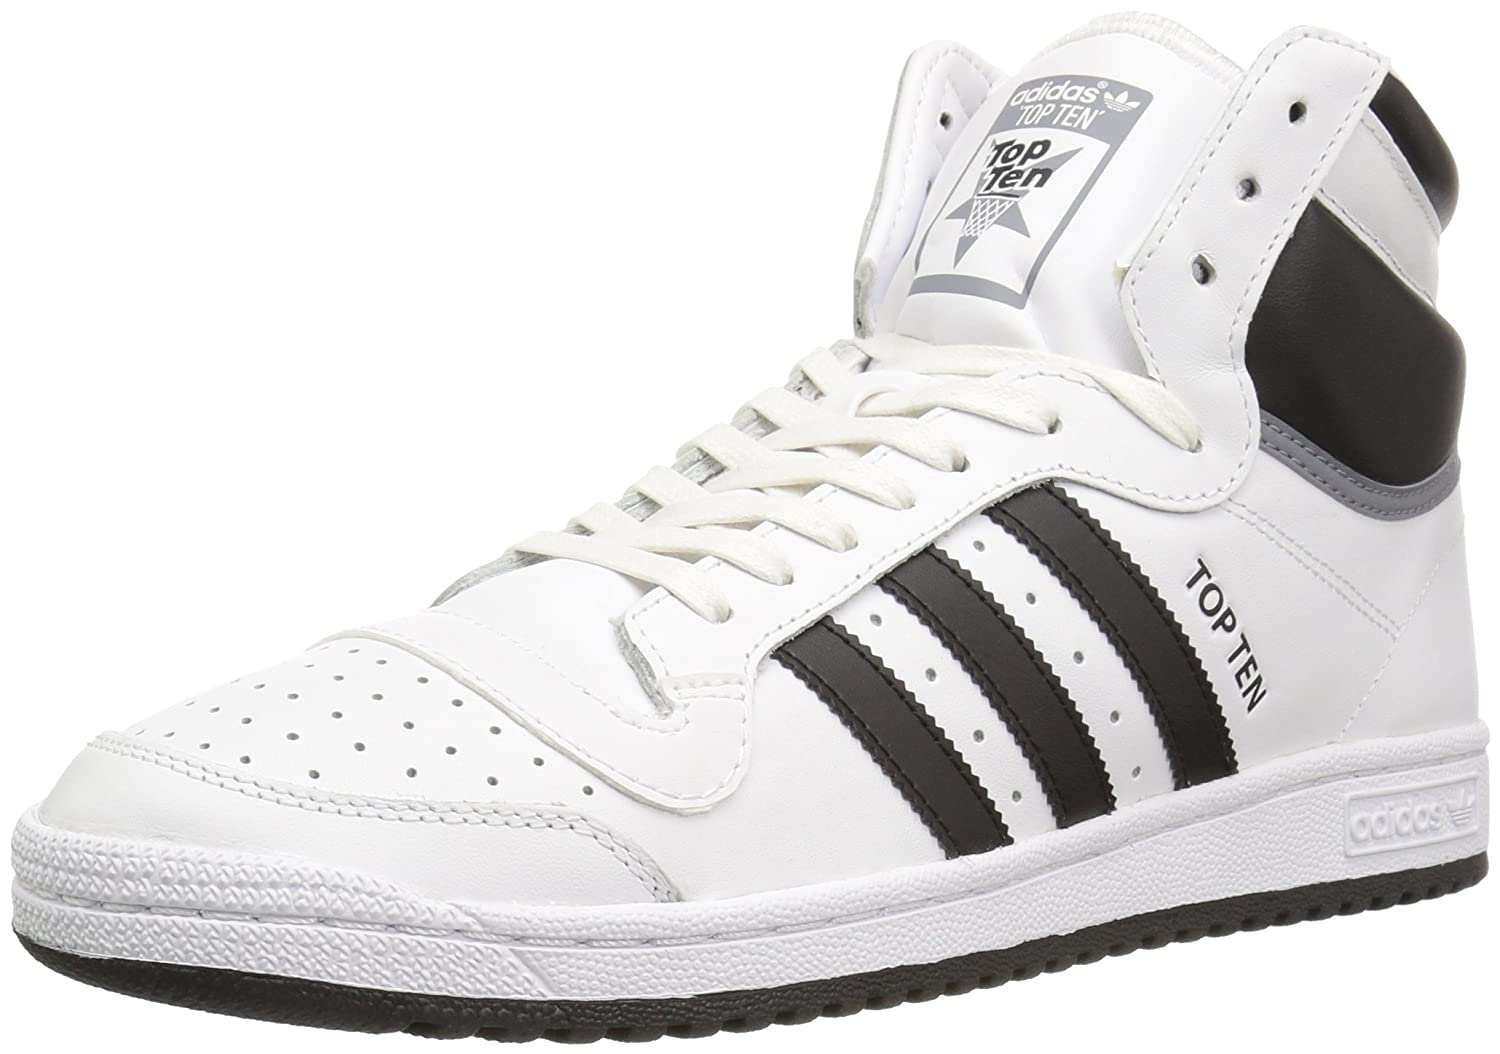 new products 88f28 e4bda Amazon.com   adidas Originals Men s Top Ten HI Fashion Running Shoe, White Black Tech  Grey Fabric, ((12 M US)   Basketball